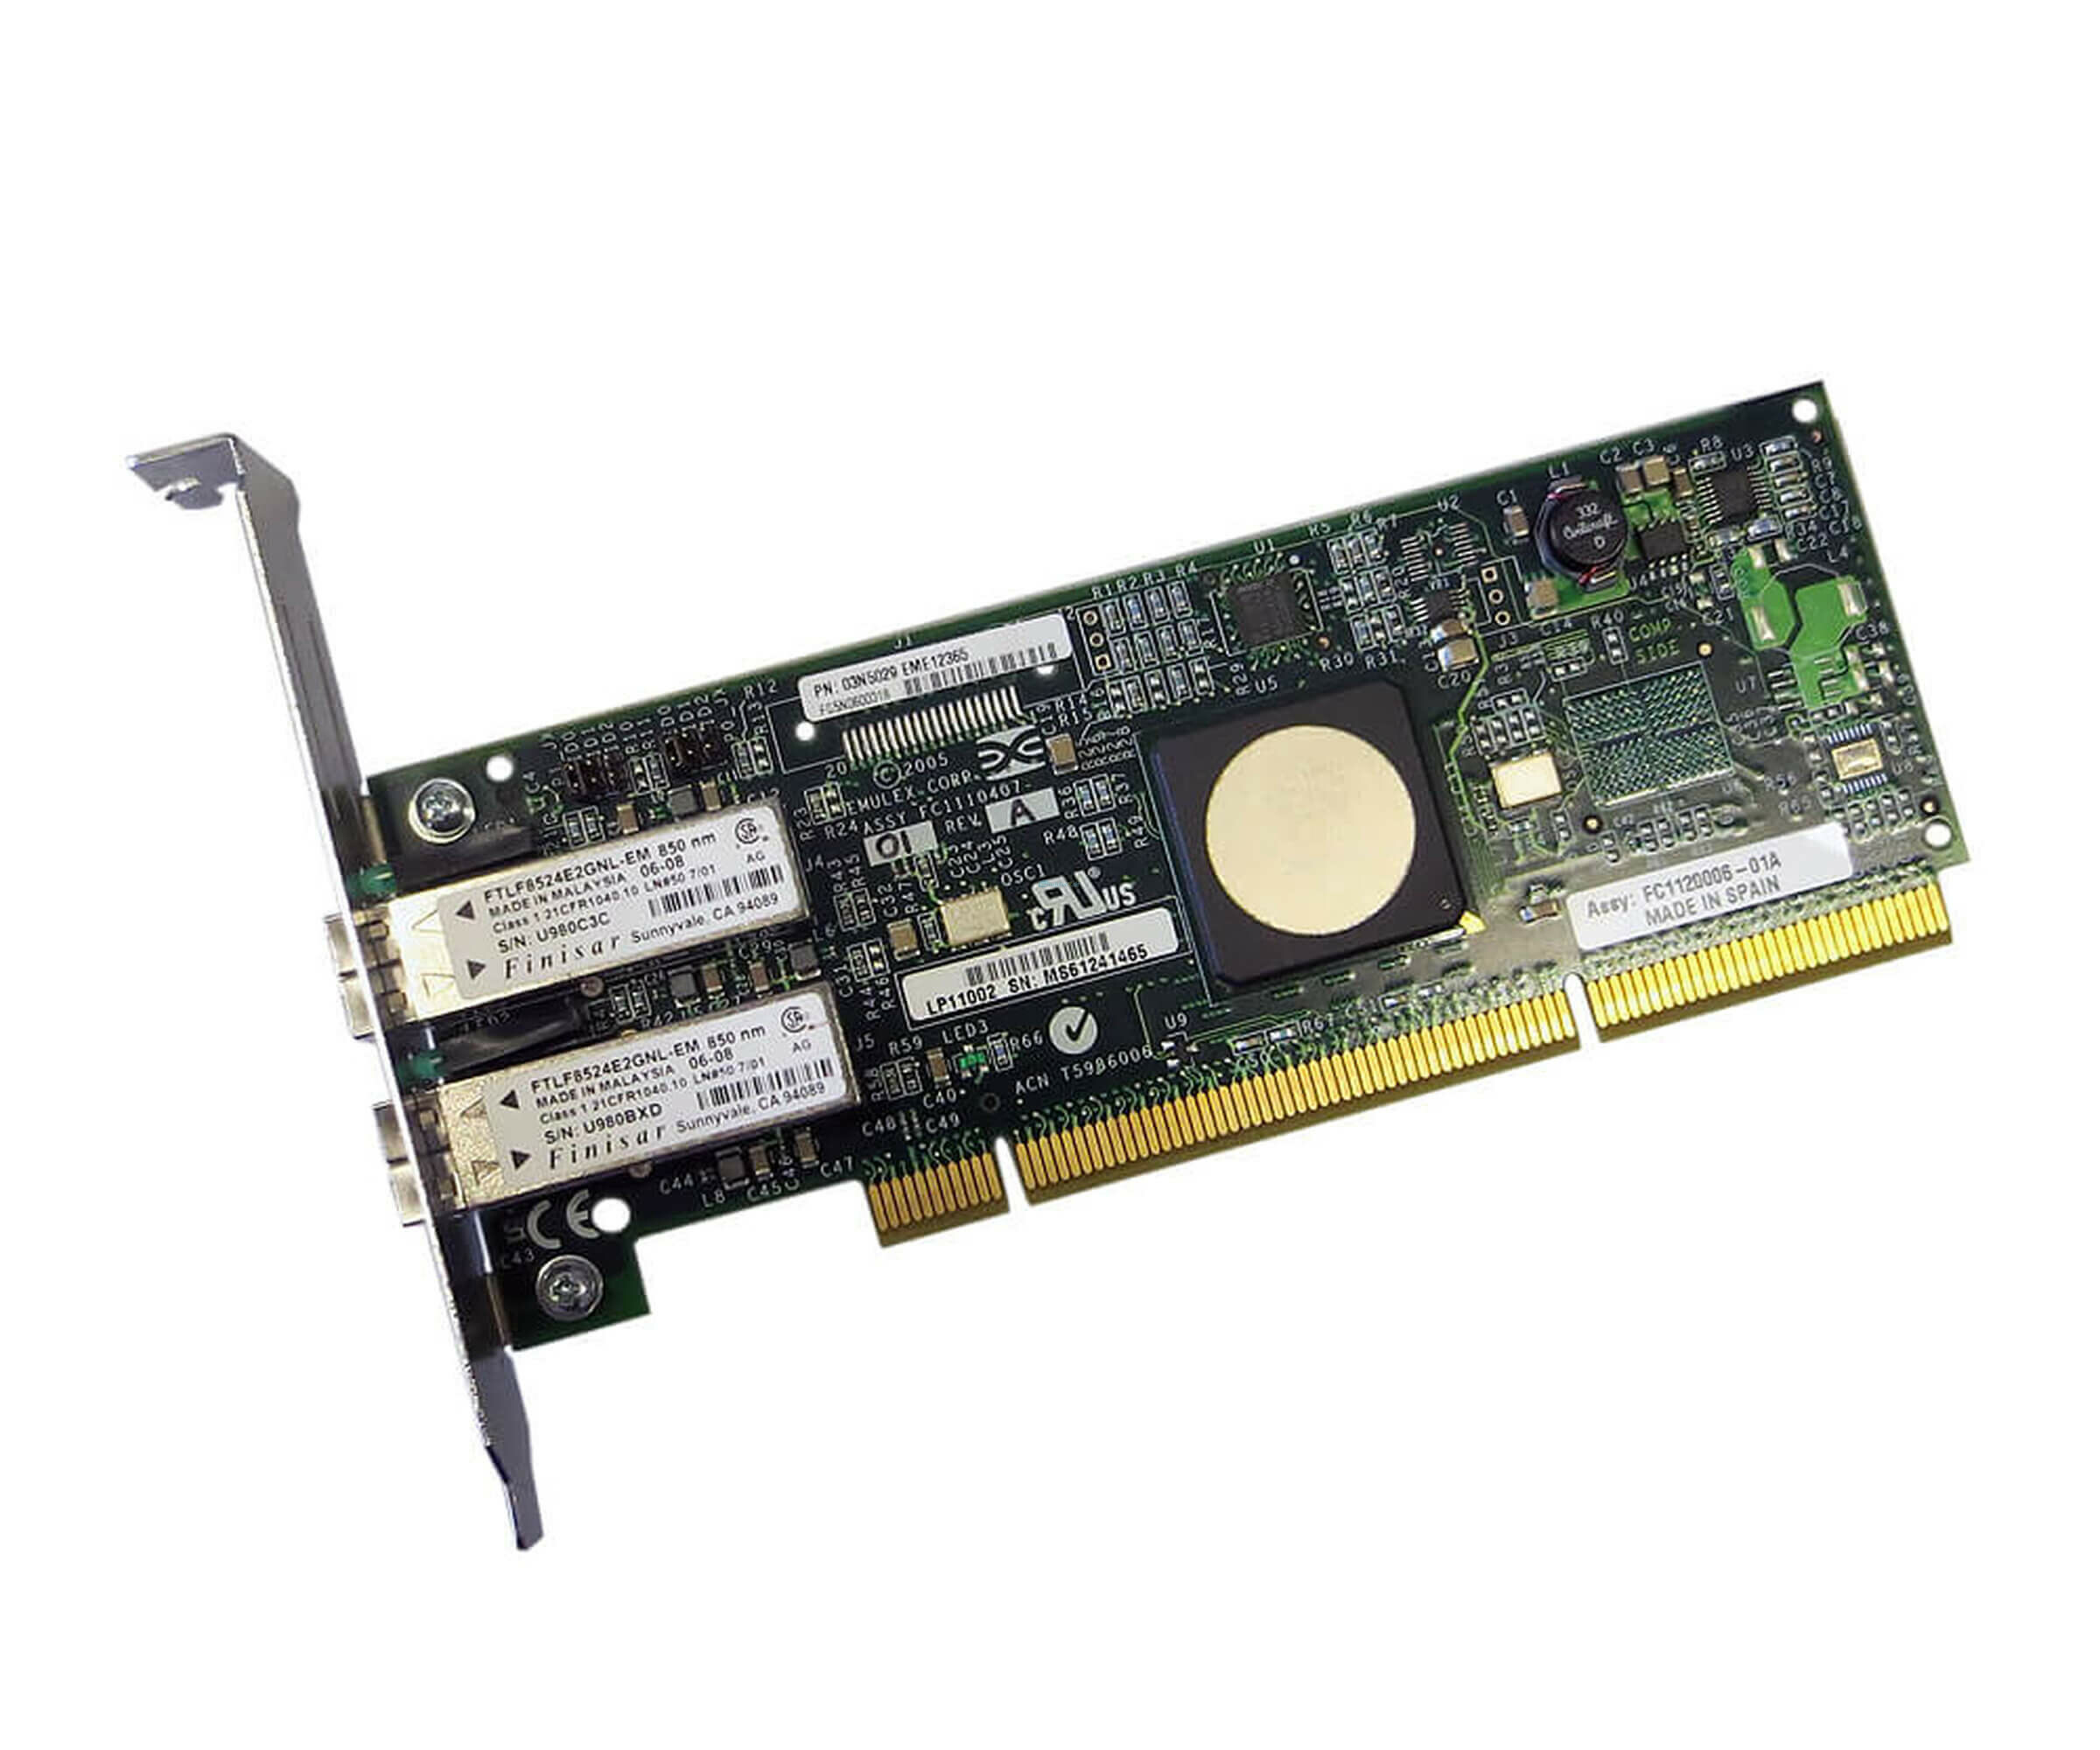 IBM 8XXX-5759 - Dual-Port 4 GB/s Fibre Channel PCI-X Host Bus Adapter - 03N5029